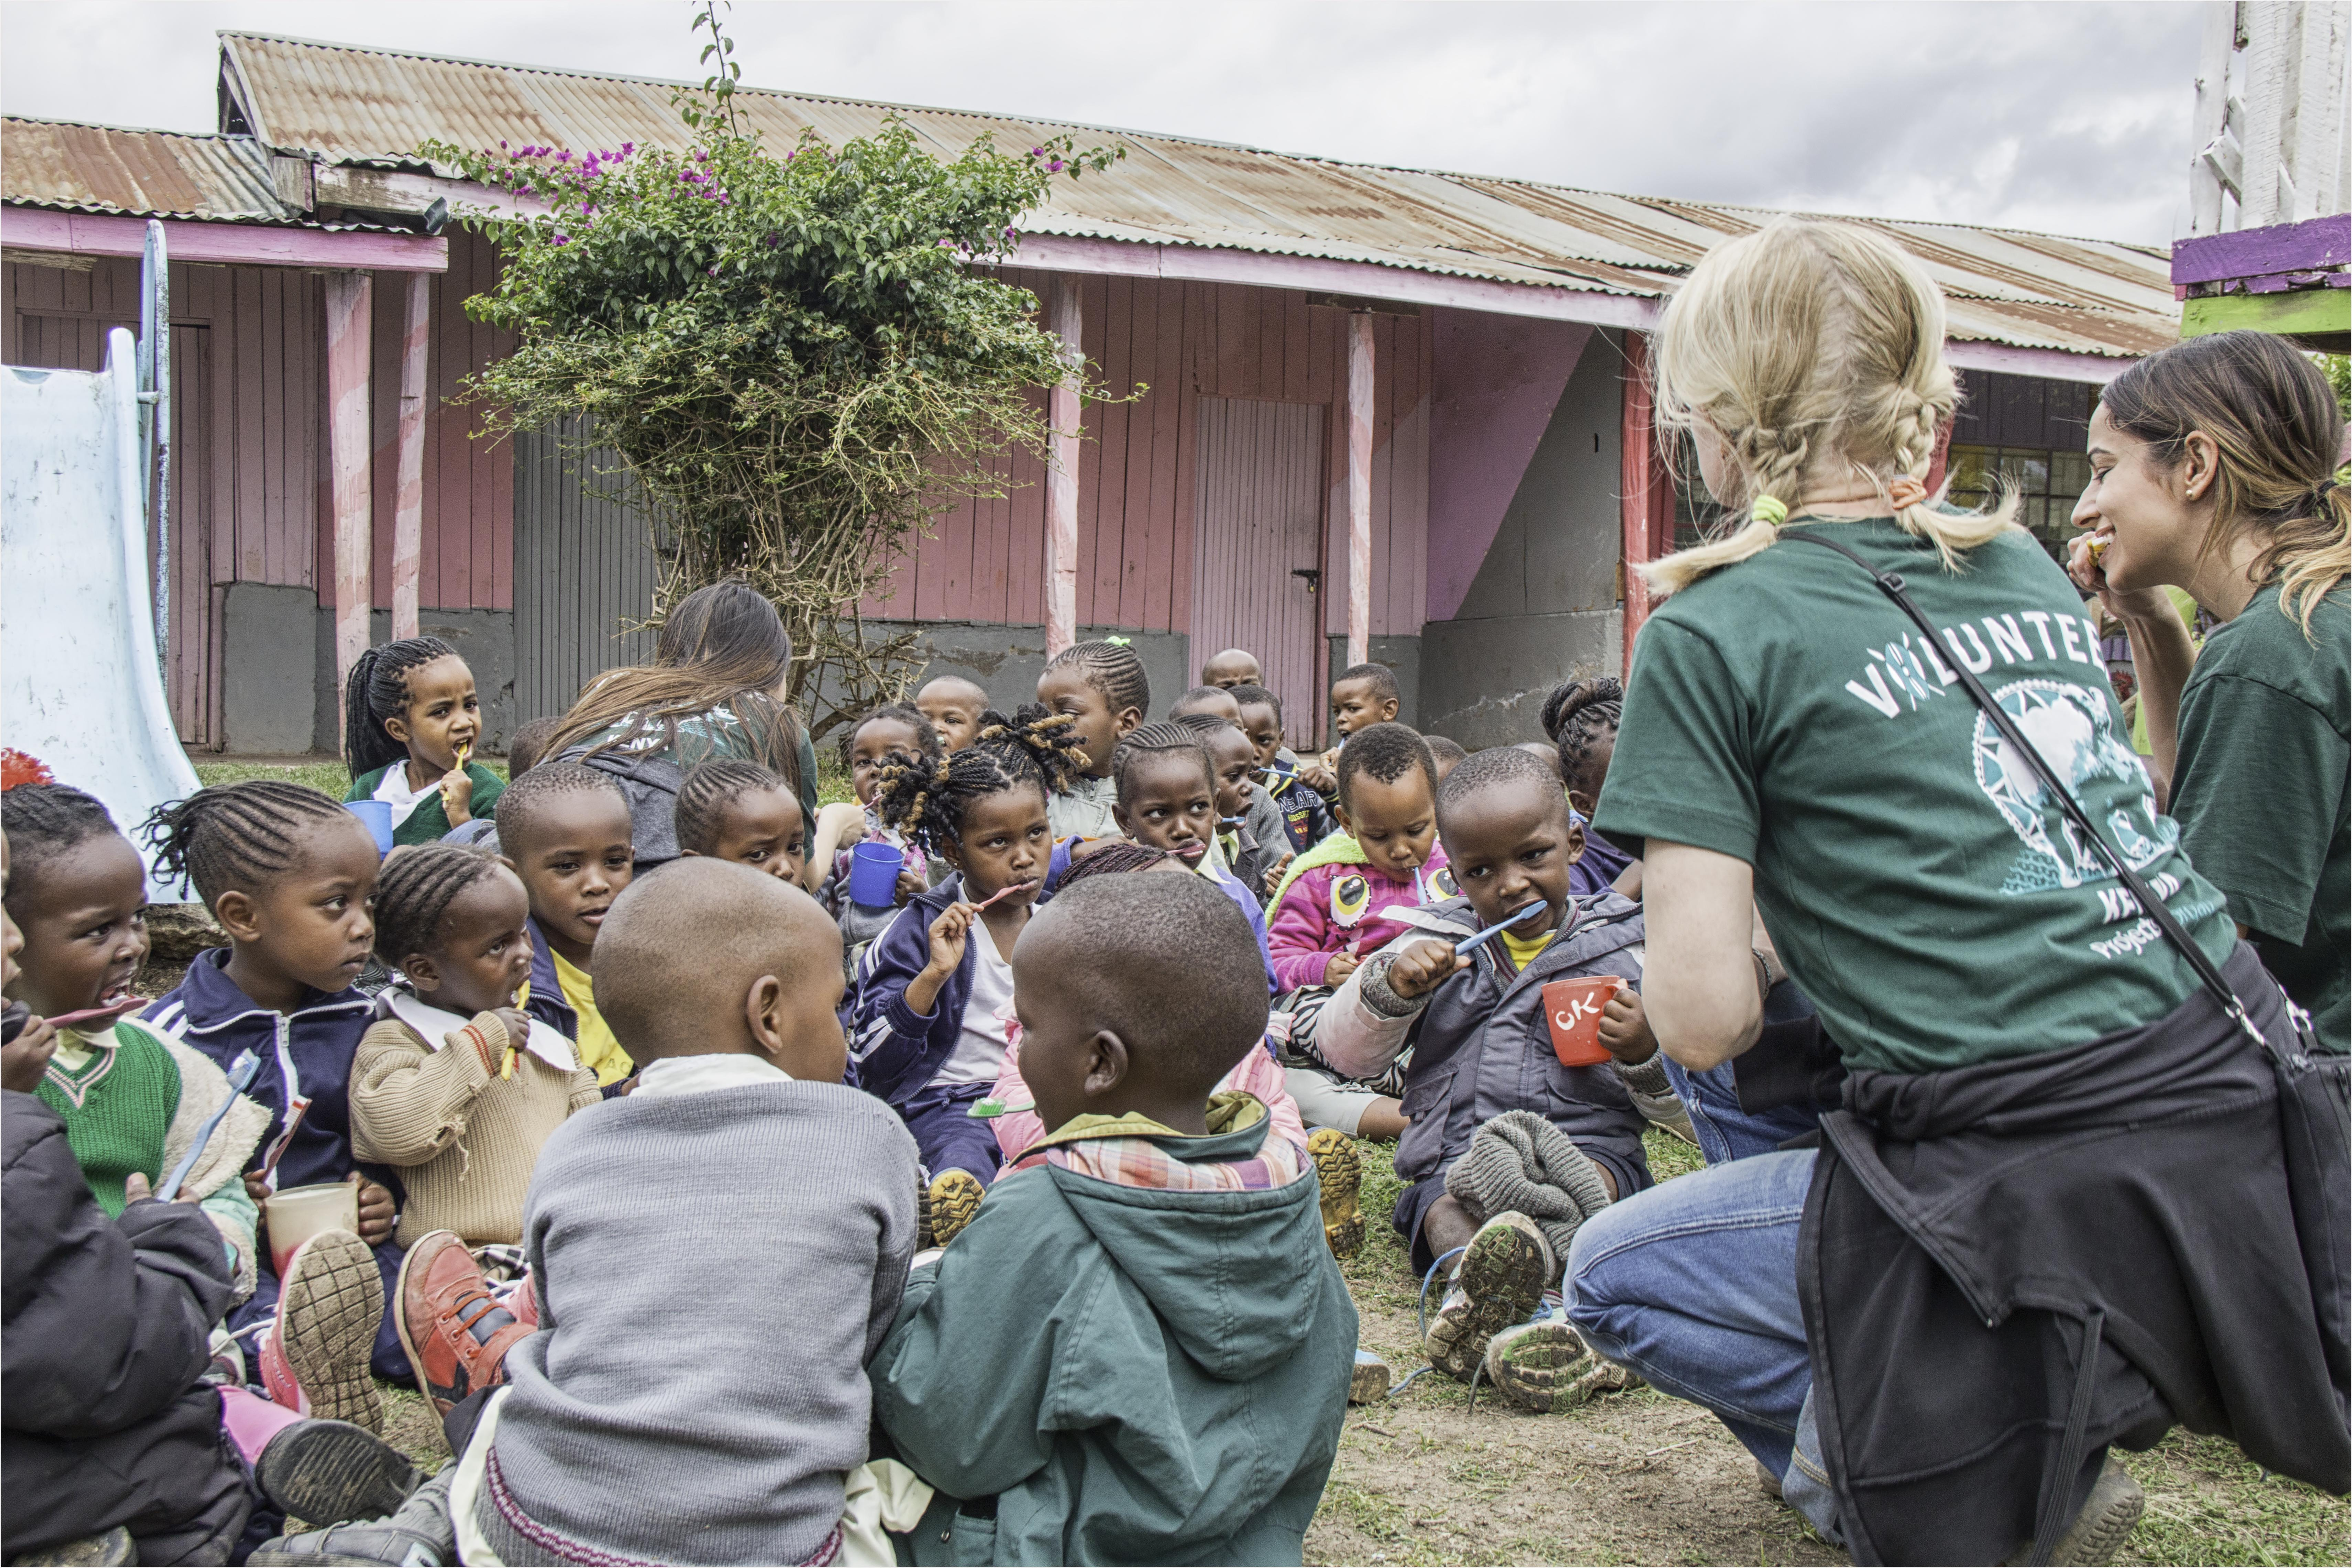 Volunteers talk with the children while they are eating as they complete volunteer work with children for teenagers in Kenya.